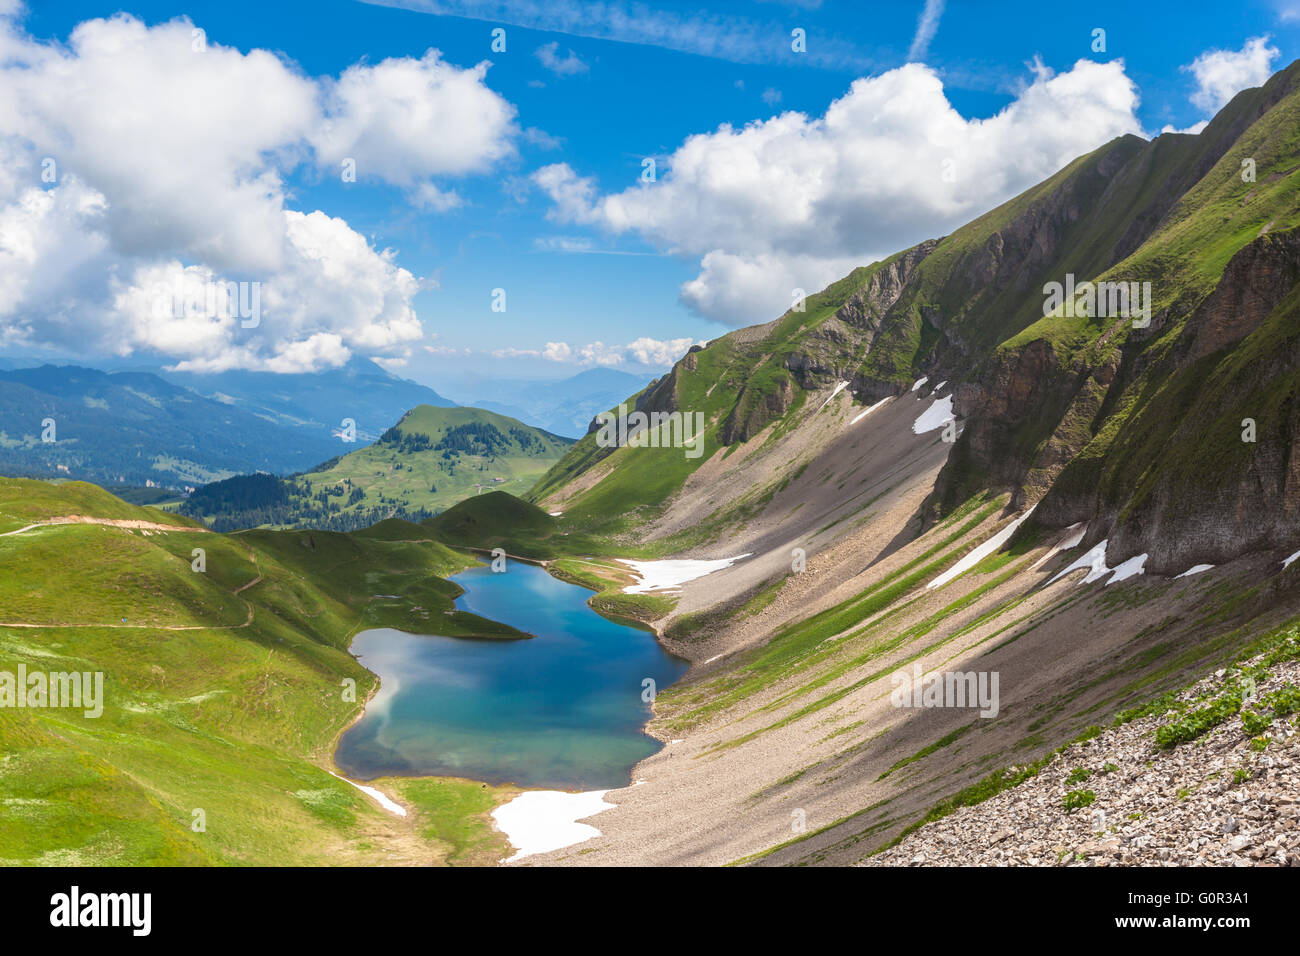 Aerial view of the Eisee (lake) near Brienzer Rothorn on Bernese Oberland, in Jungfrau region of Switzerland. Stock Photo